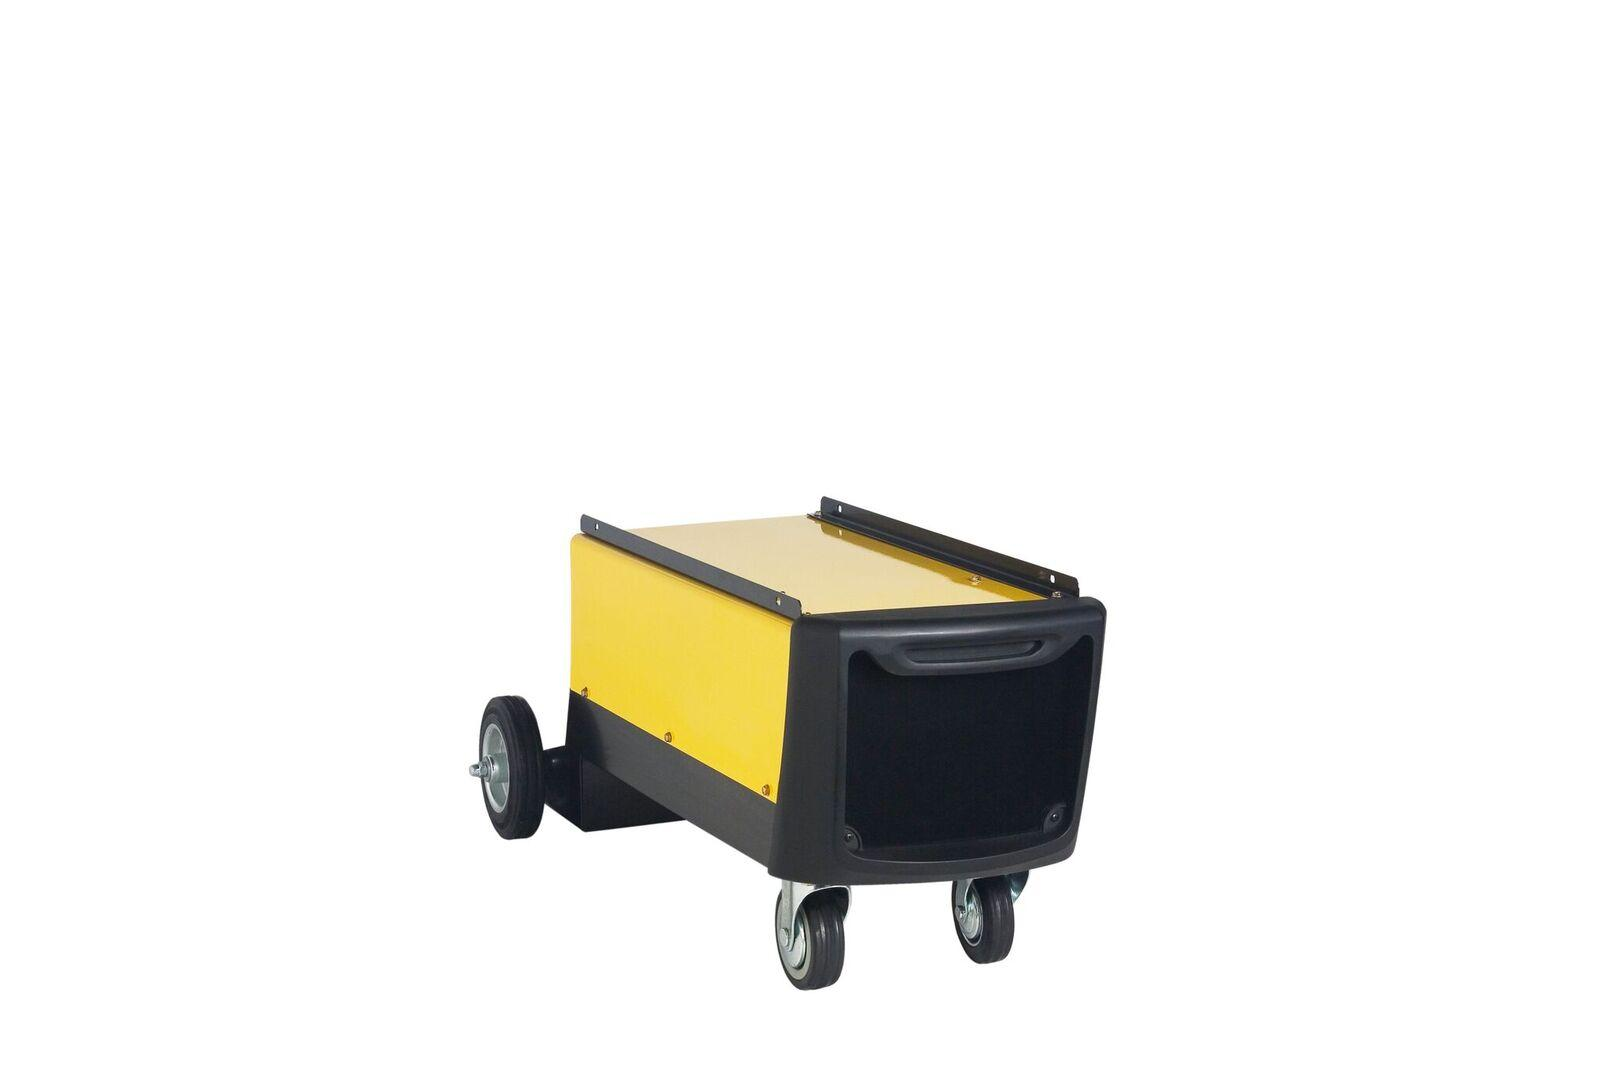 W I A Am358 Welding Trolley